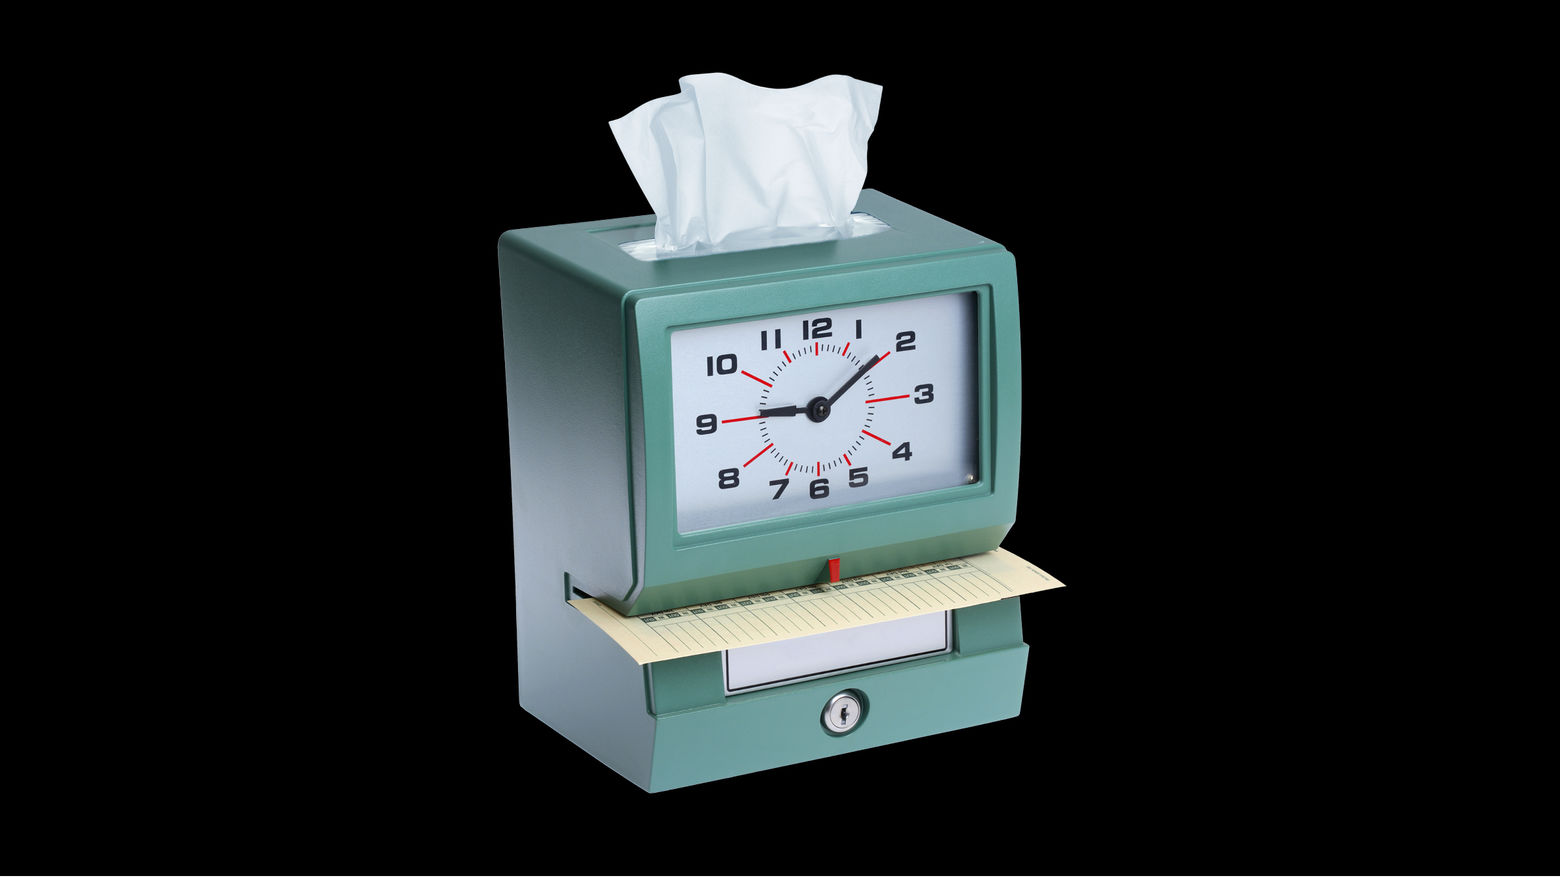 A punch-in clock with a tissue sticking out of the top